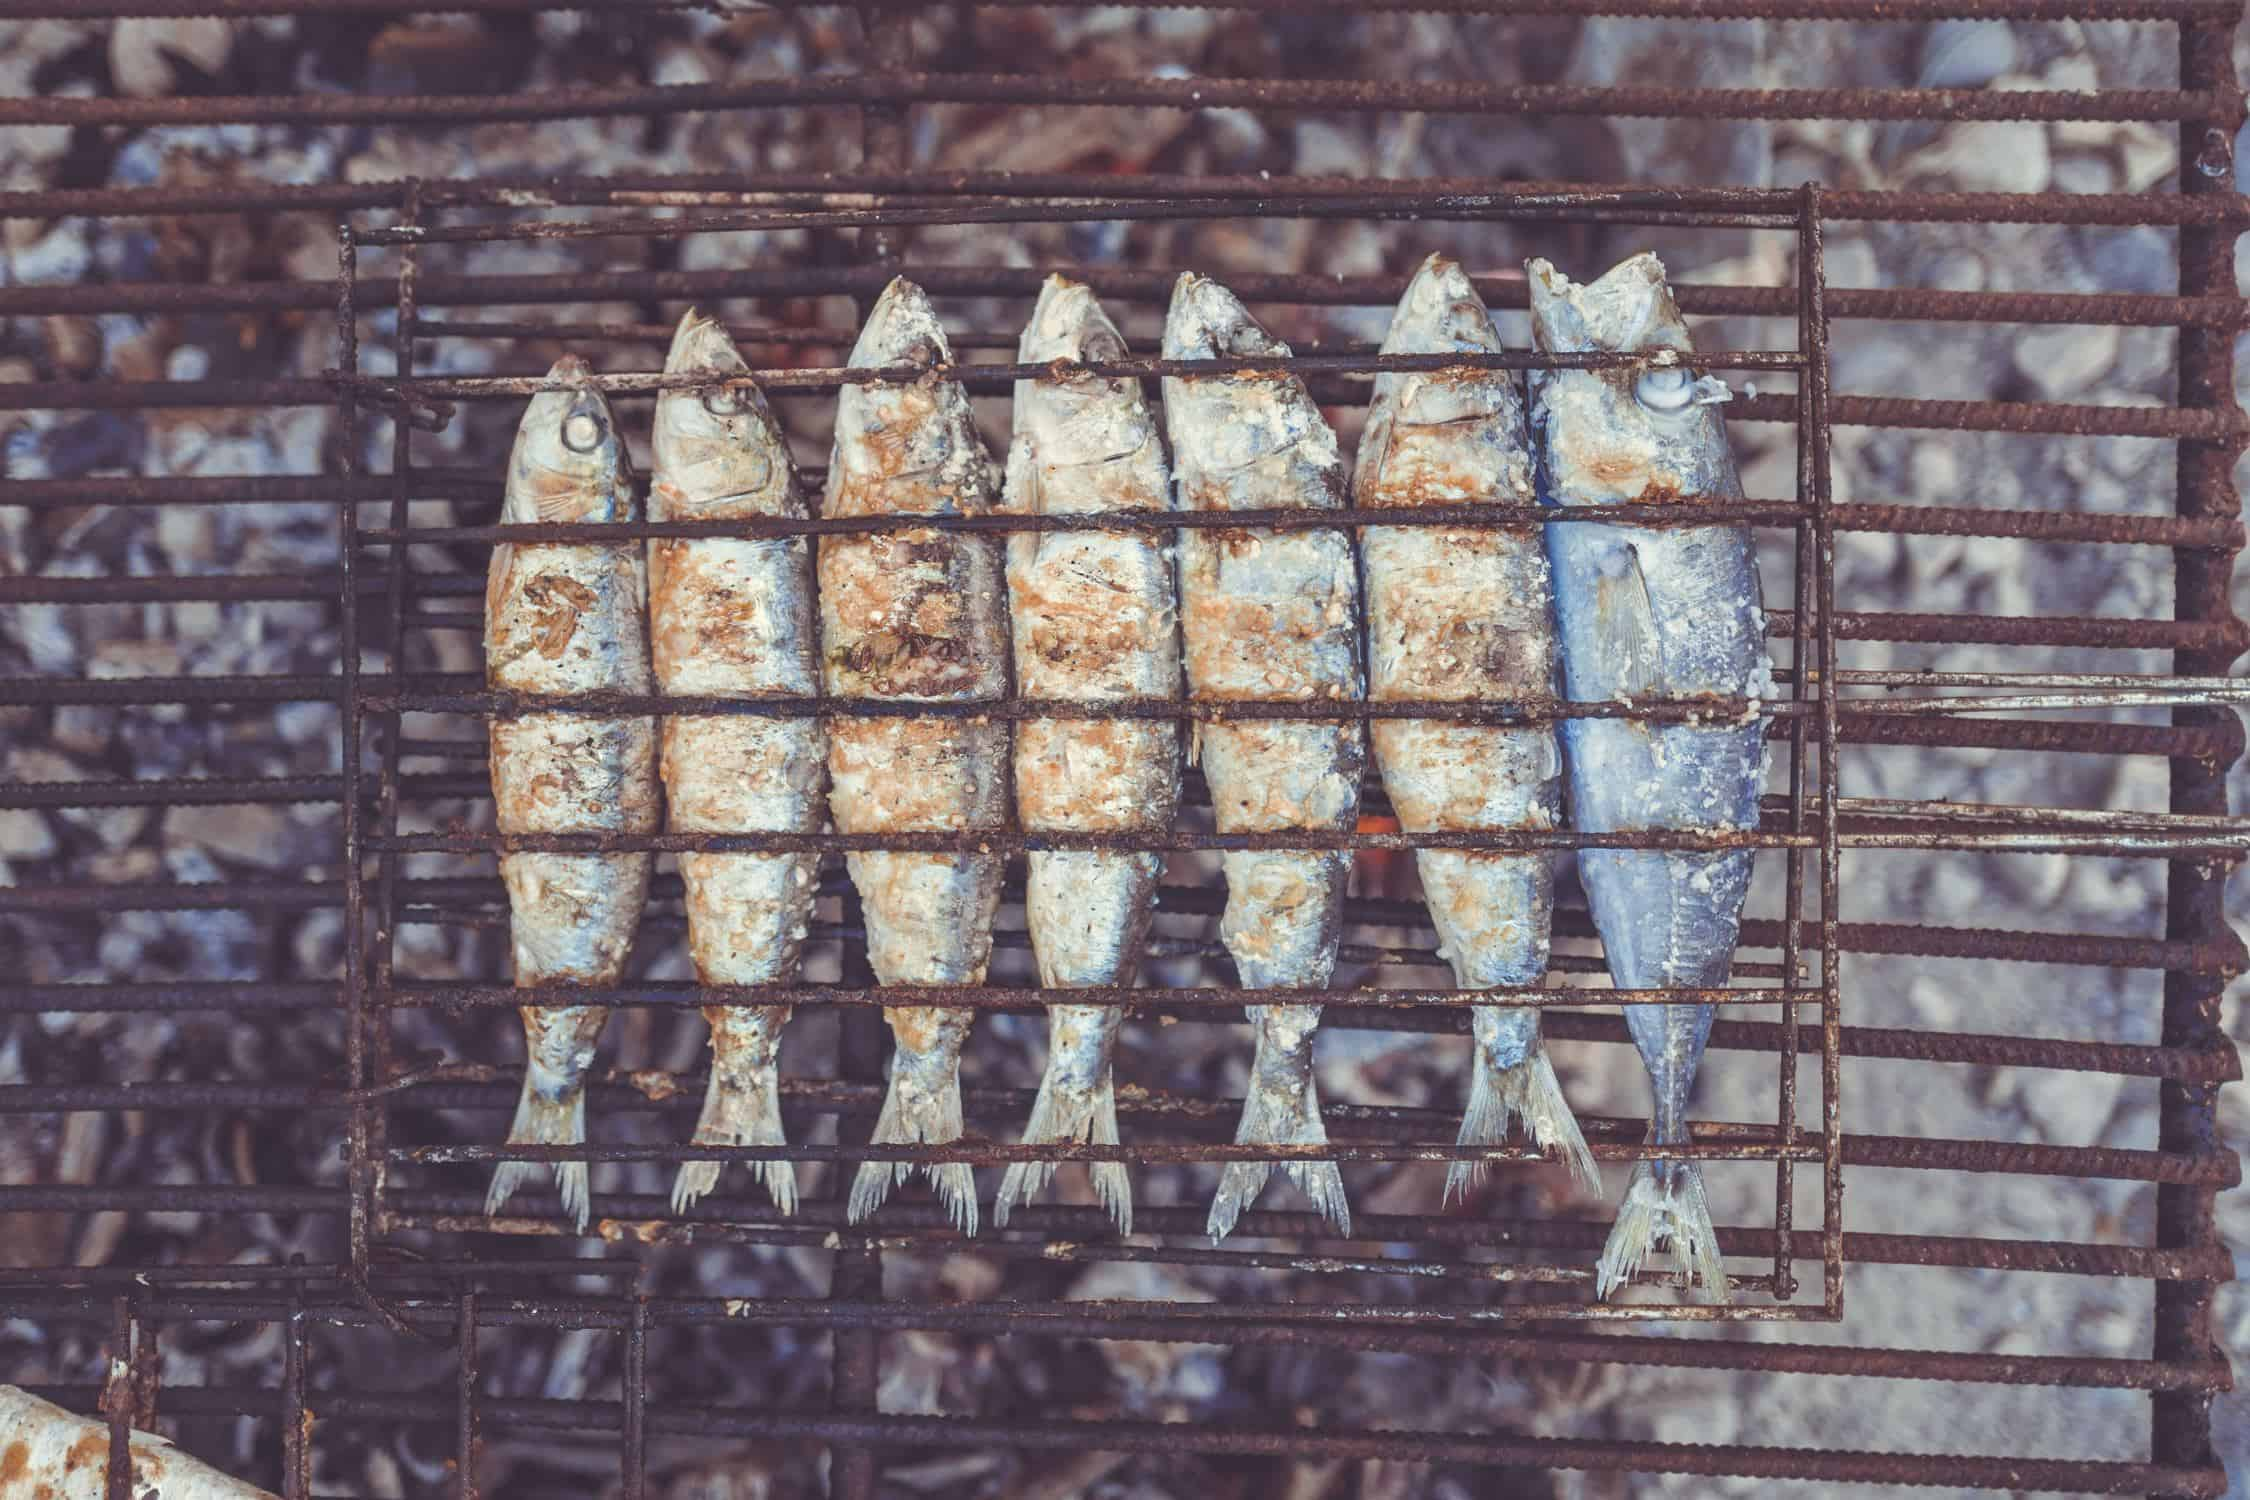 A Barbeque Grill full of fish